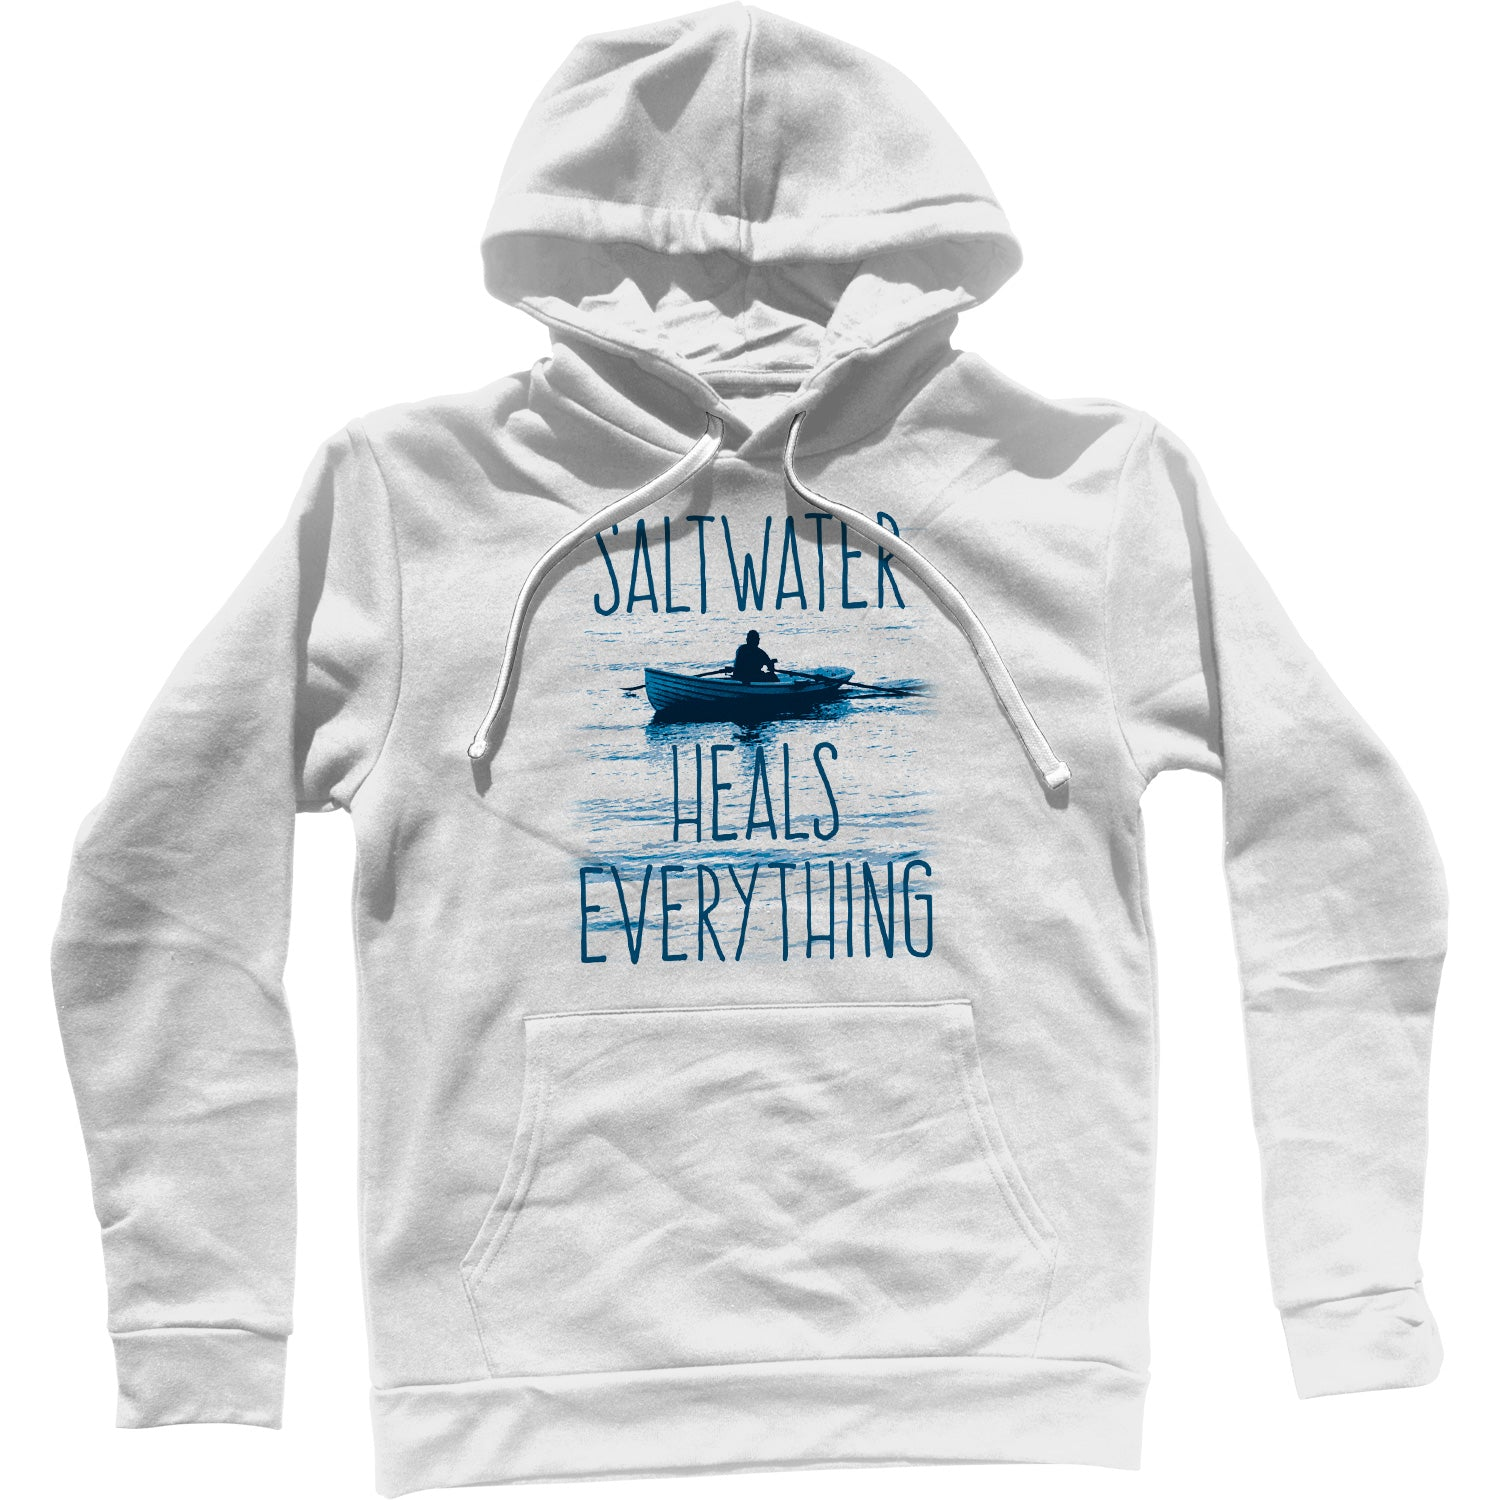 Saltwater Heals Everything Unisex Hoodie